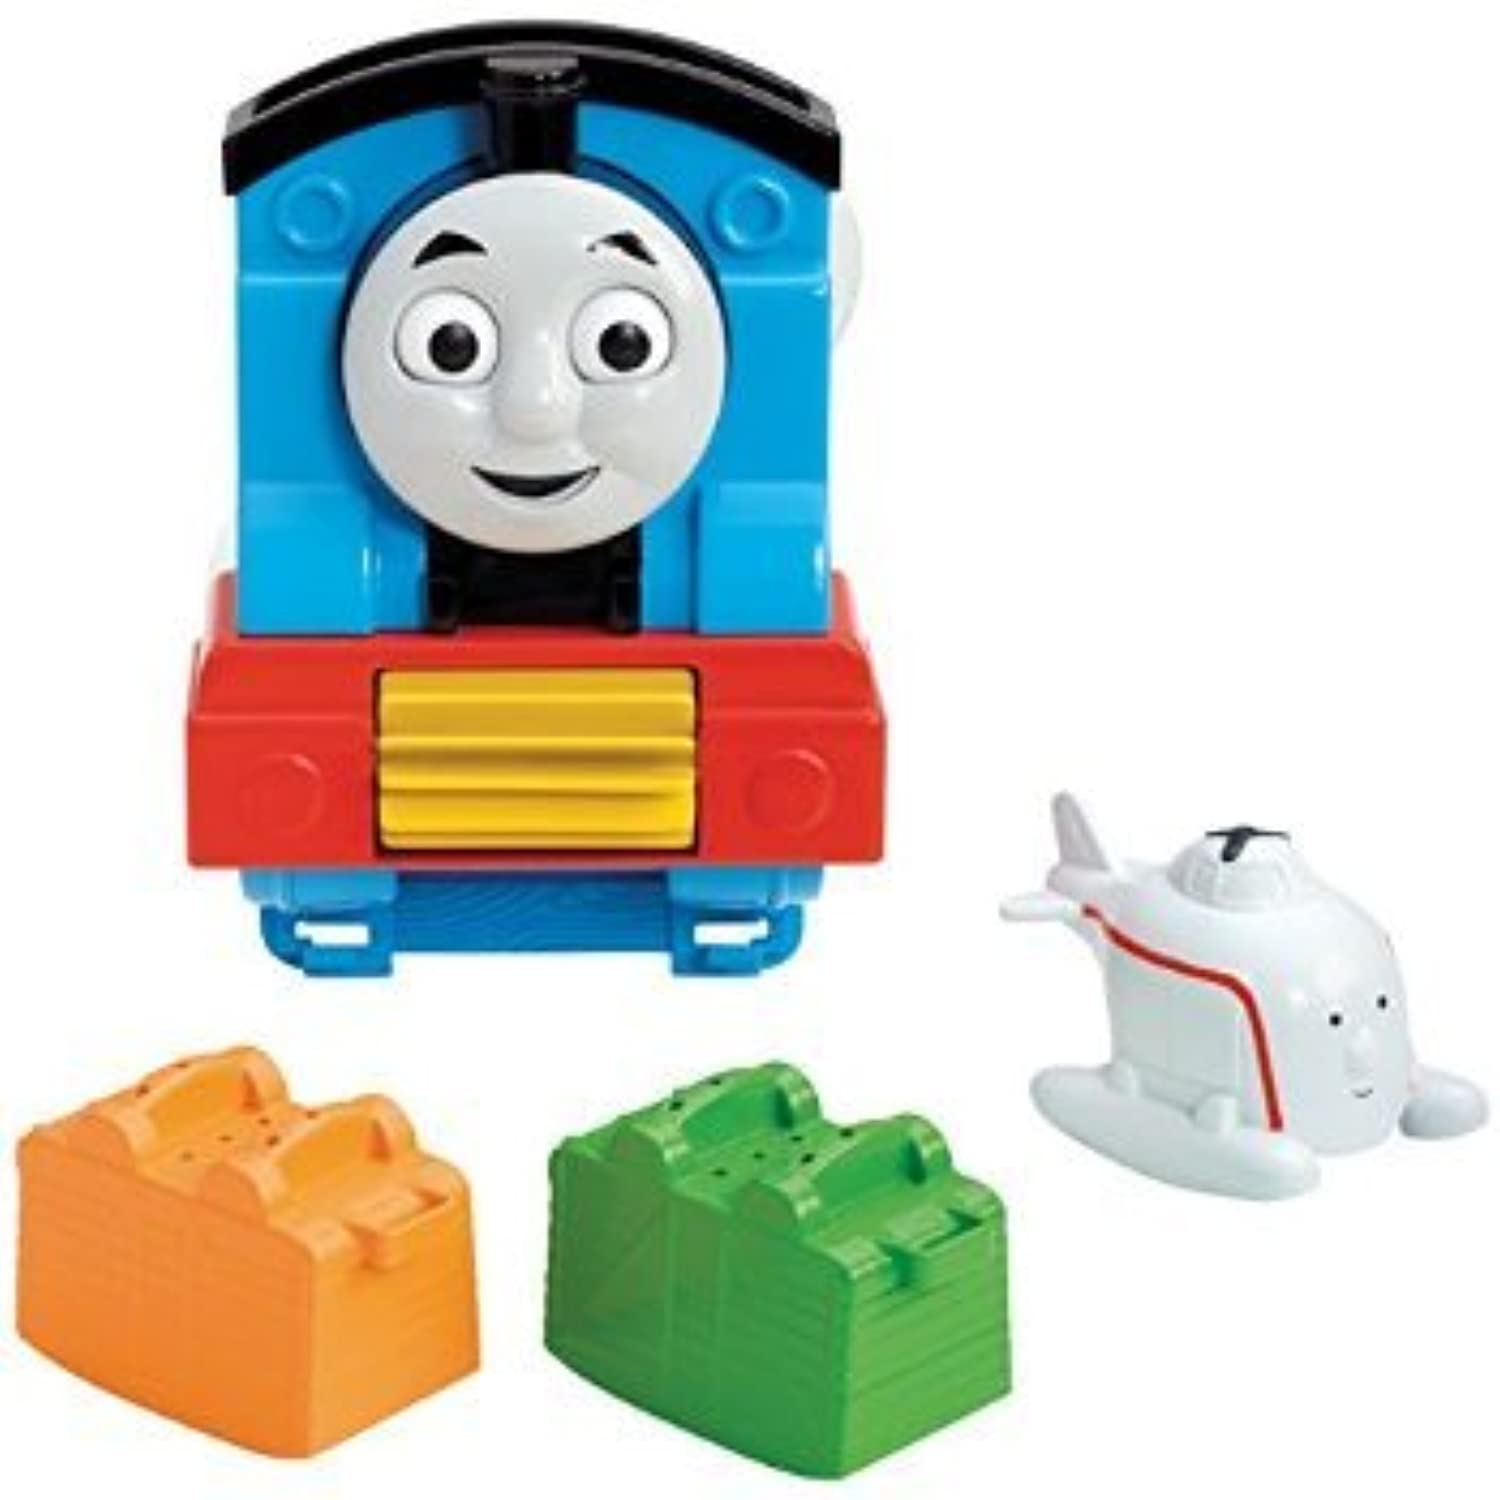 Fisher-Price My First Thomas The Train, Bath Splash Thomas おもちゃ [並行輸入品]